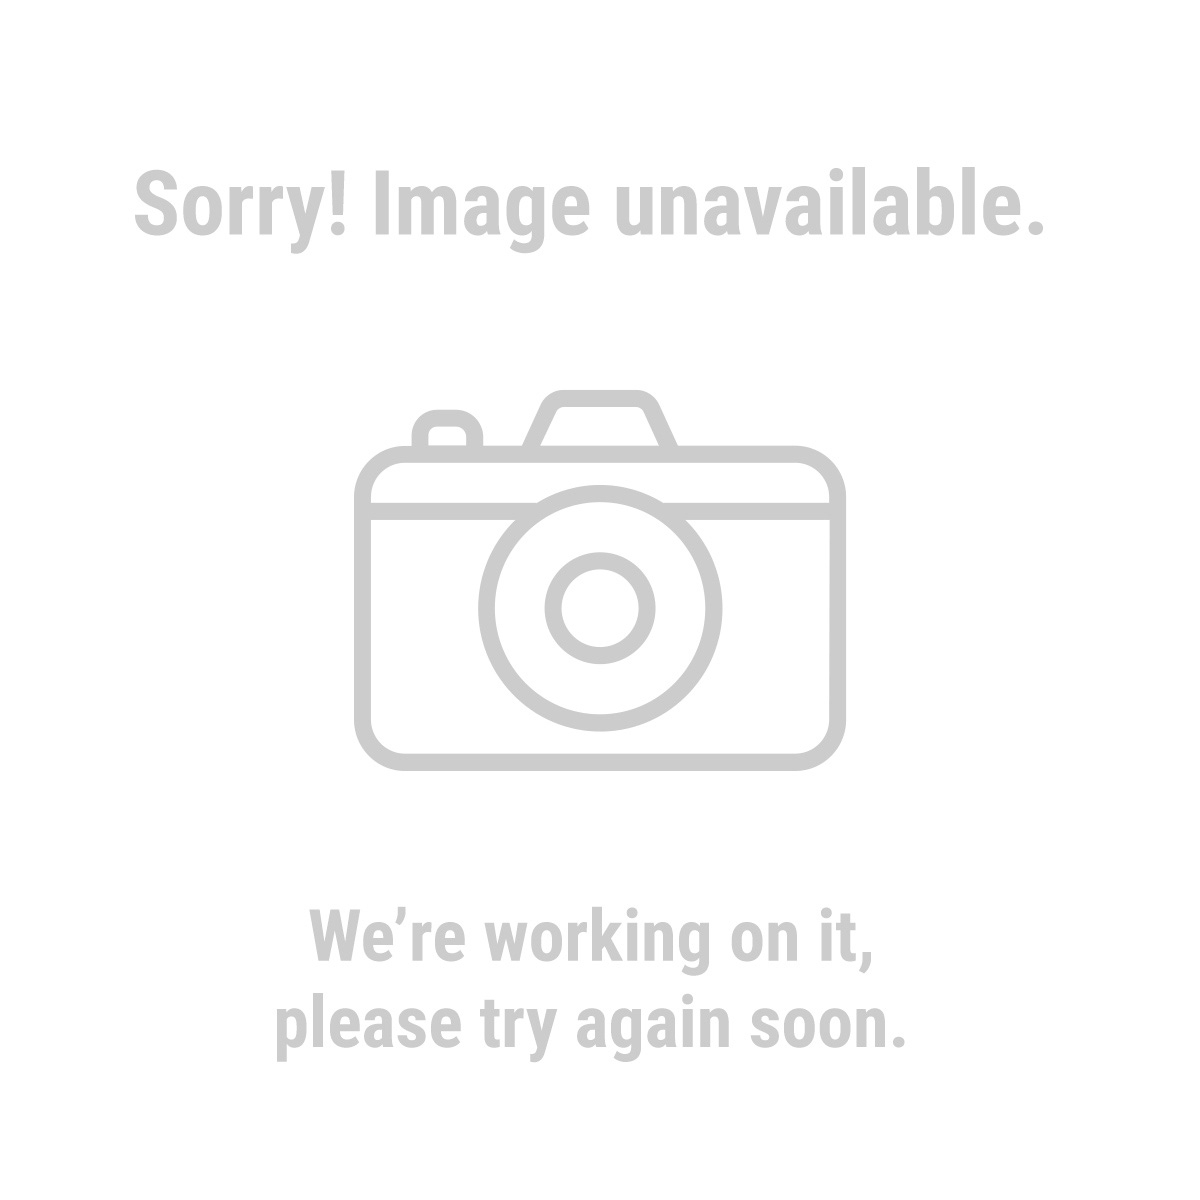 Chicago Electric Power Tools 66129 5 Piece Stainless Steel Wheel and Brush Set